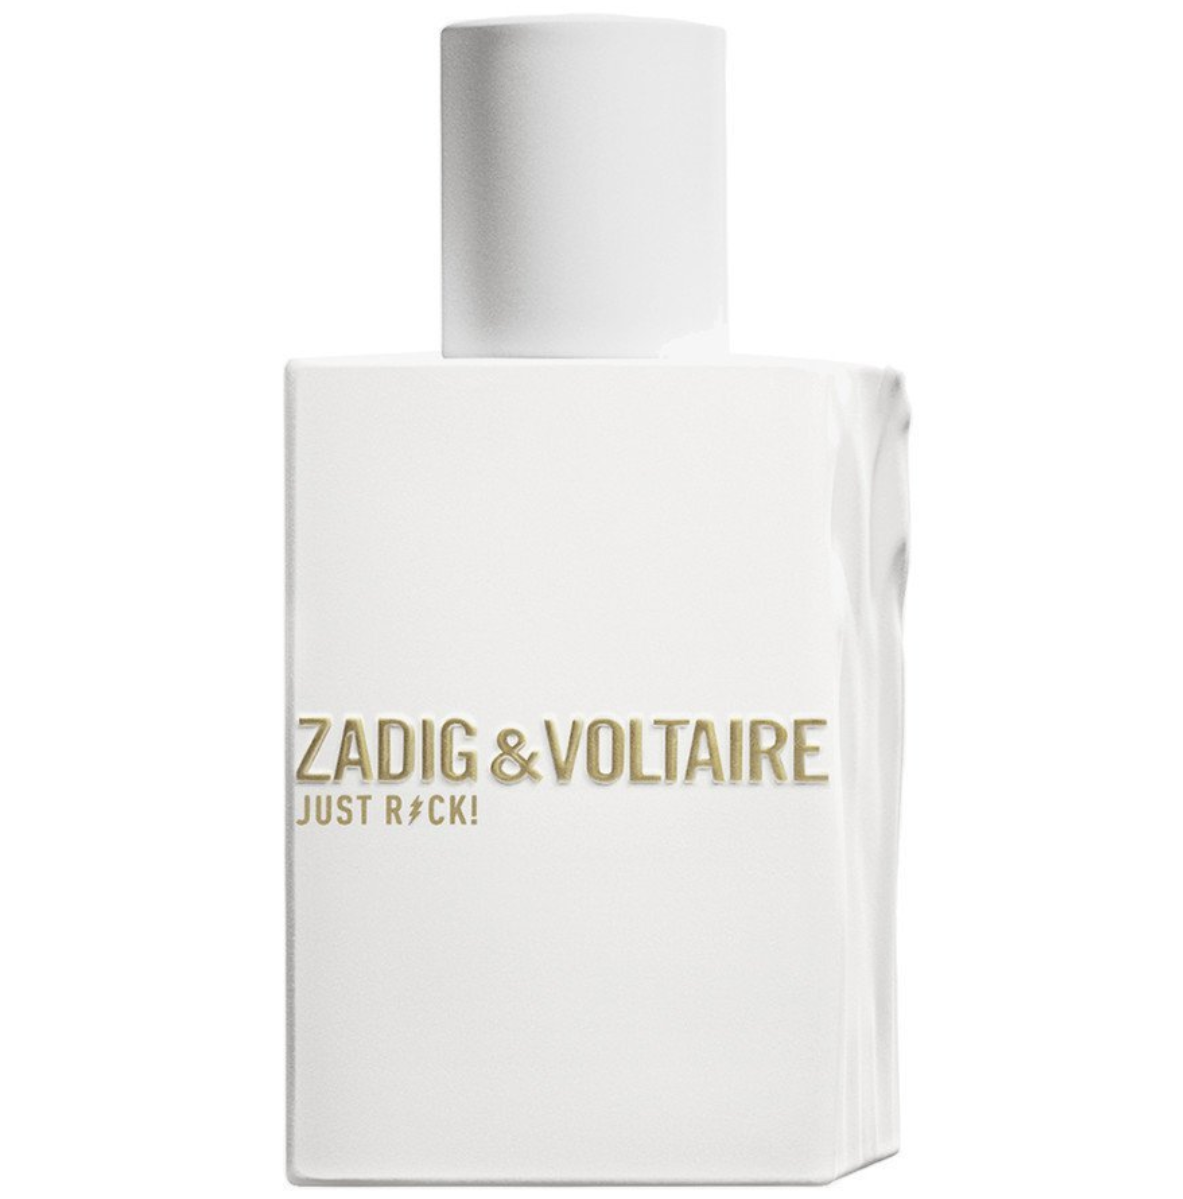 zadig voltaire perfumes outlet portugal. Black Bedroom Furniture Sets. Home Design Ideas